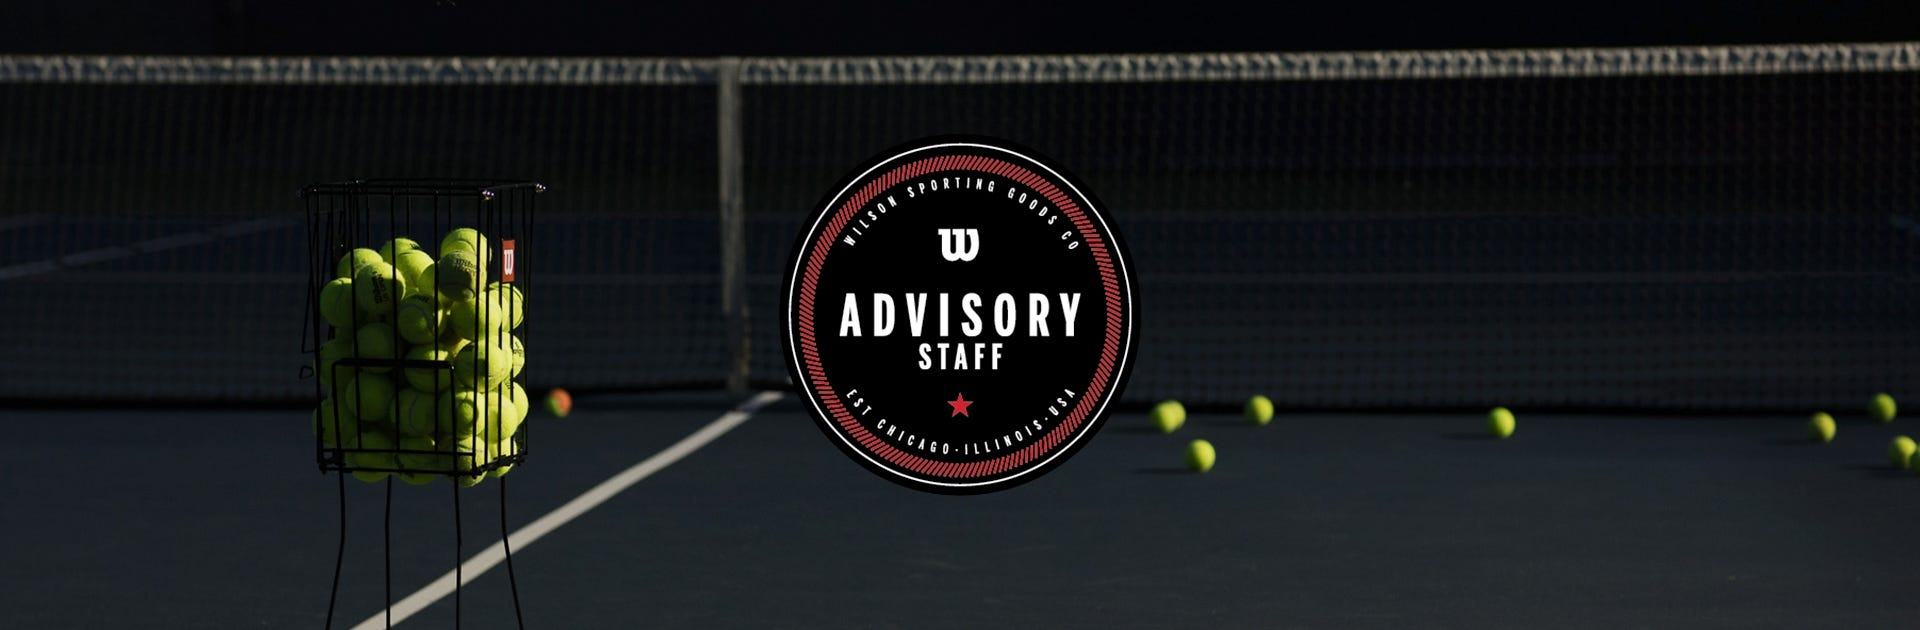 Wilson Tennis-Beraterteam